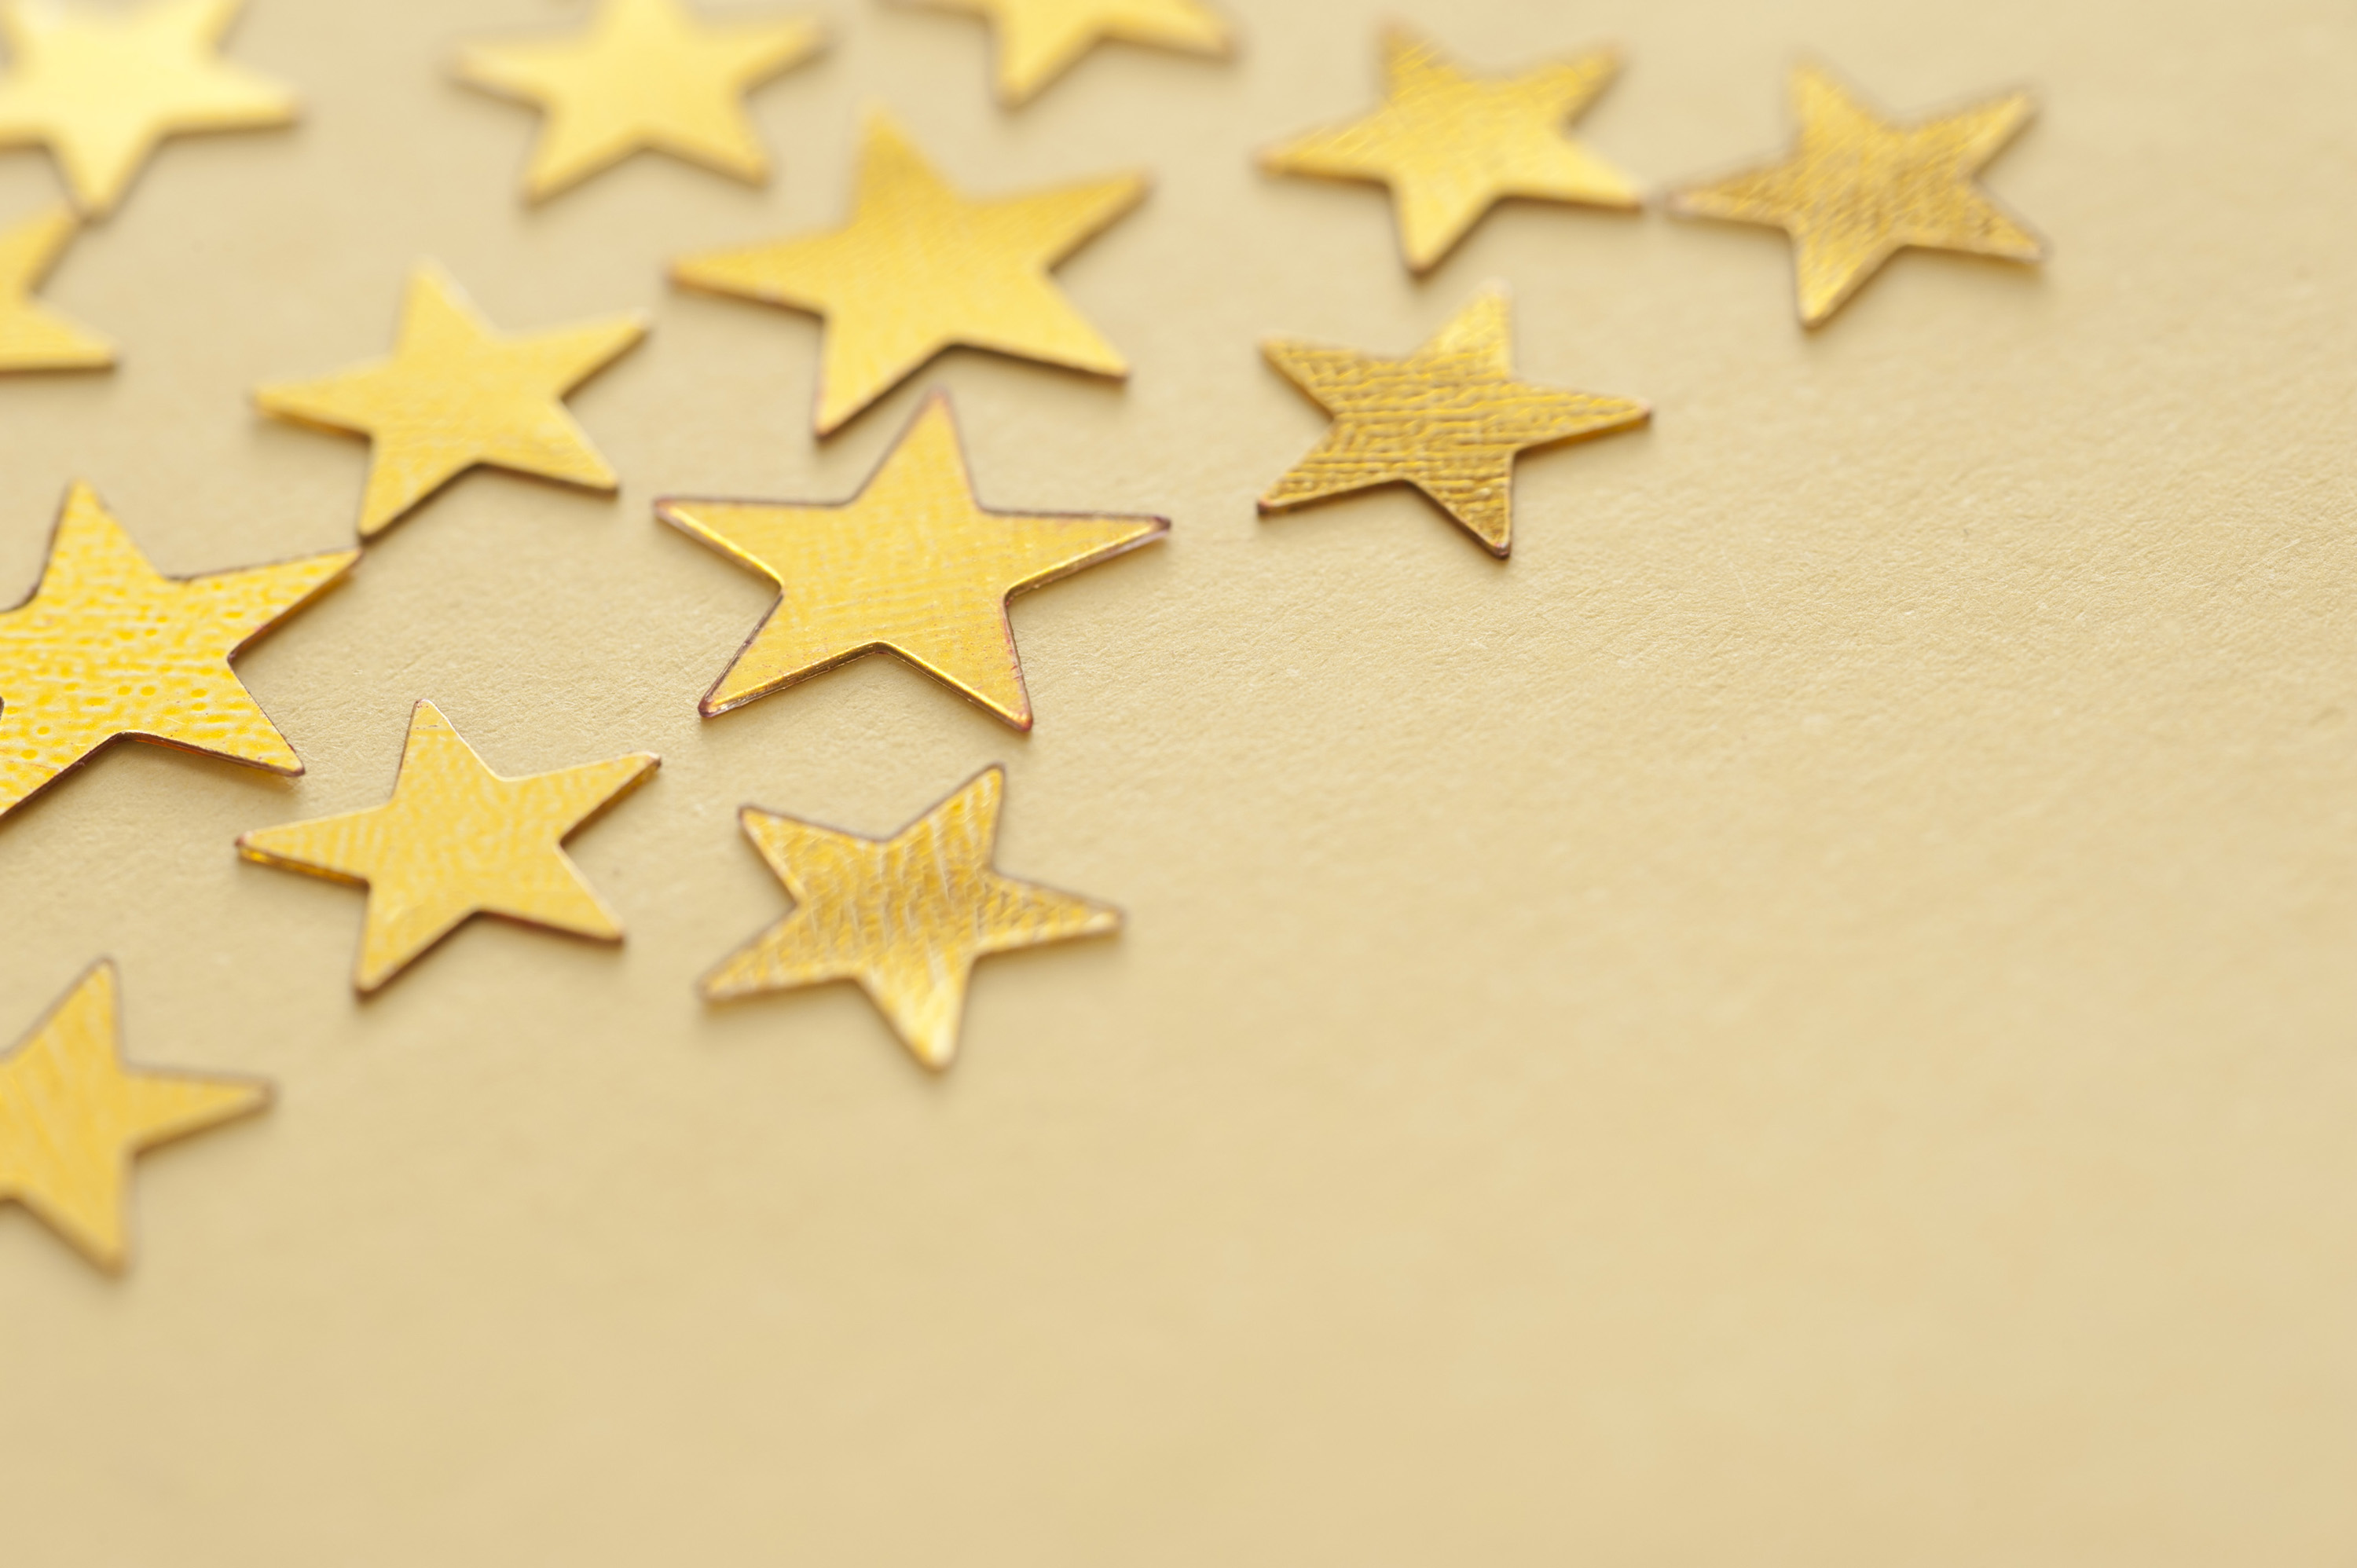 Free Stock Photo 11200 Gold Star Background With Copyspace